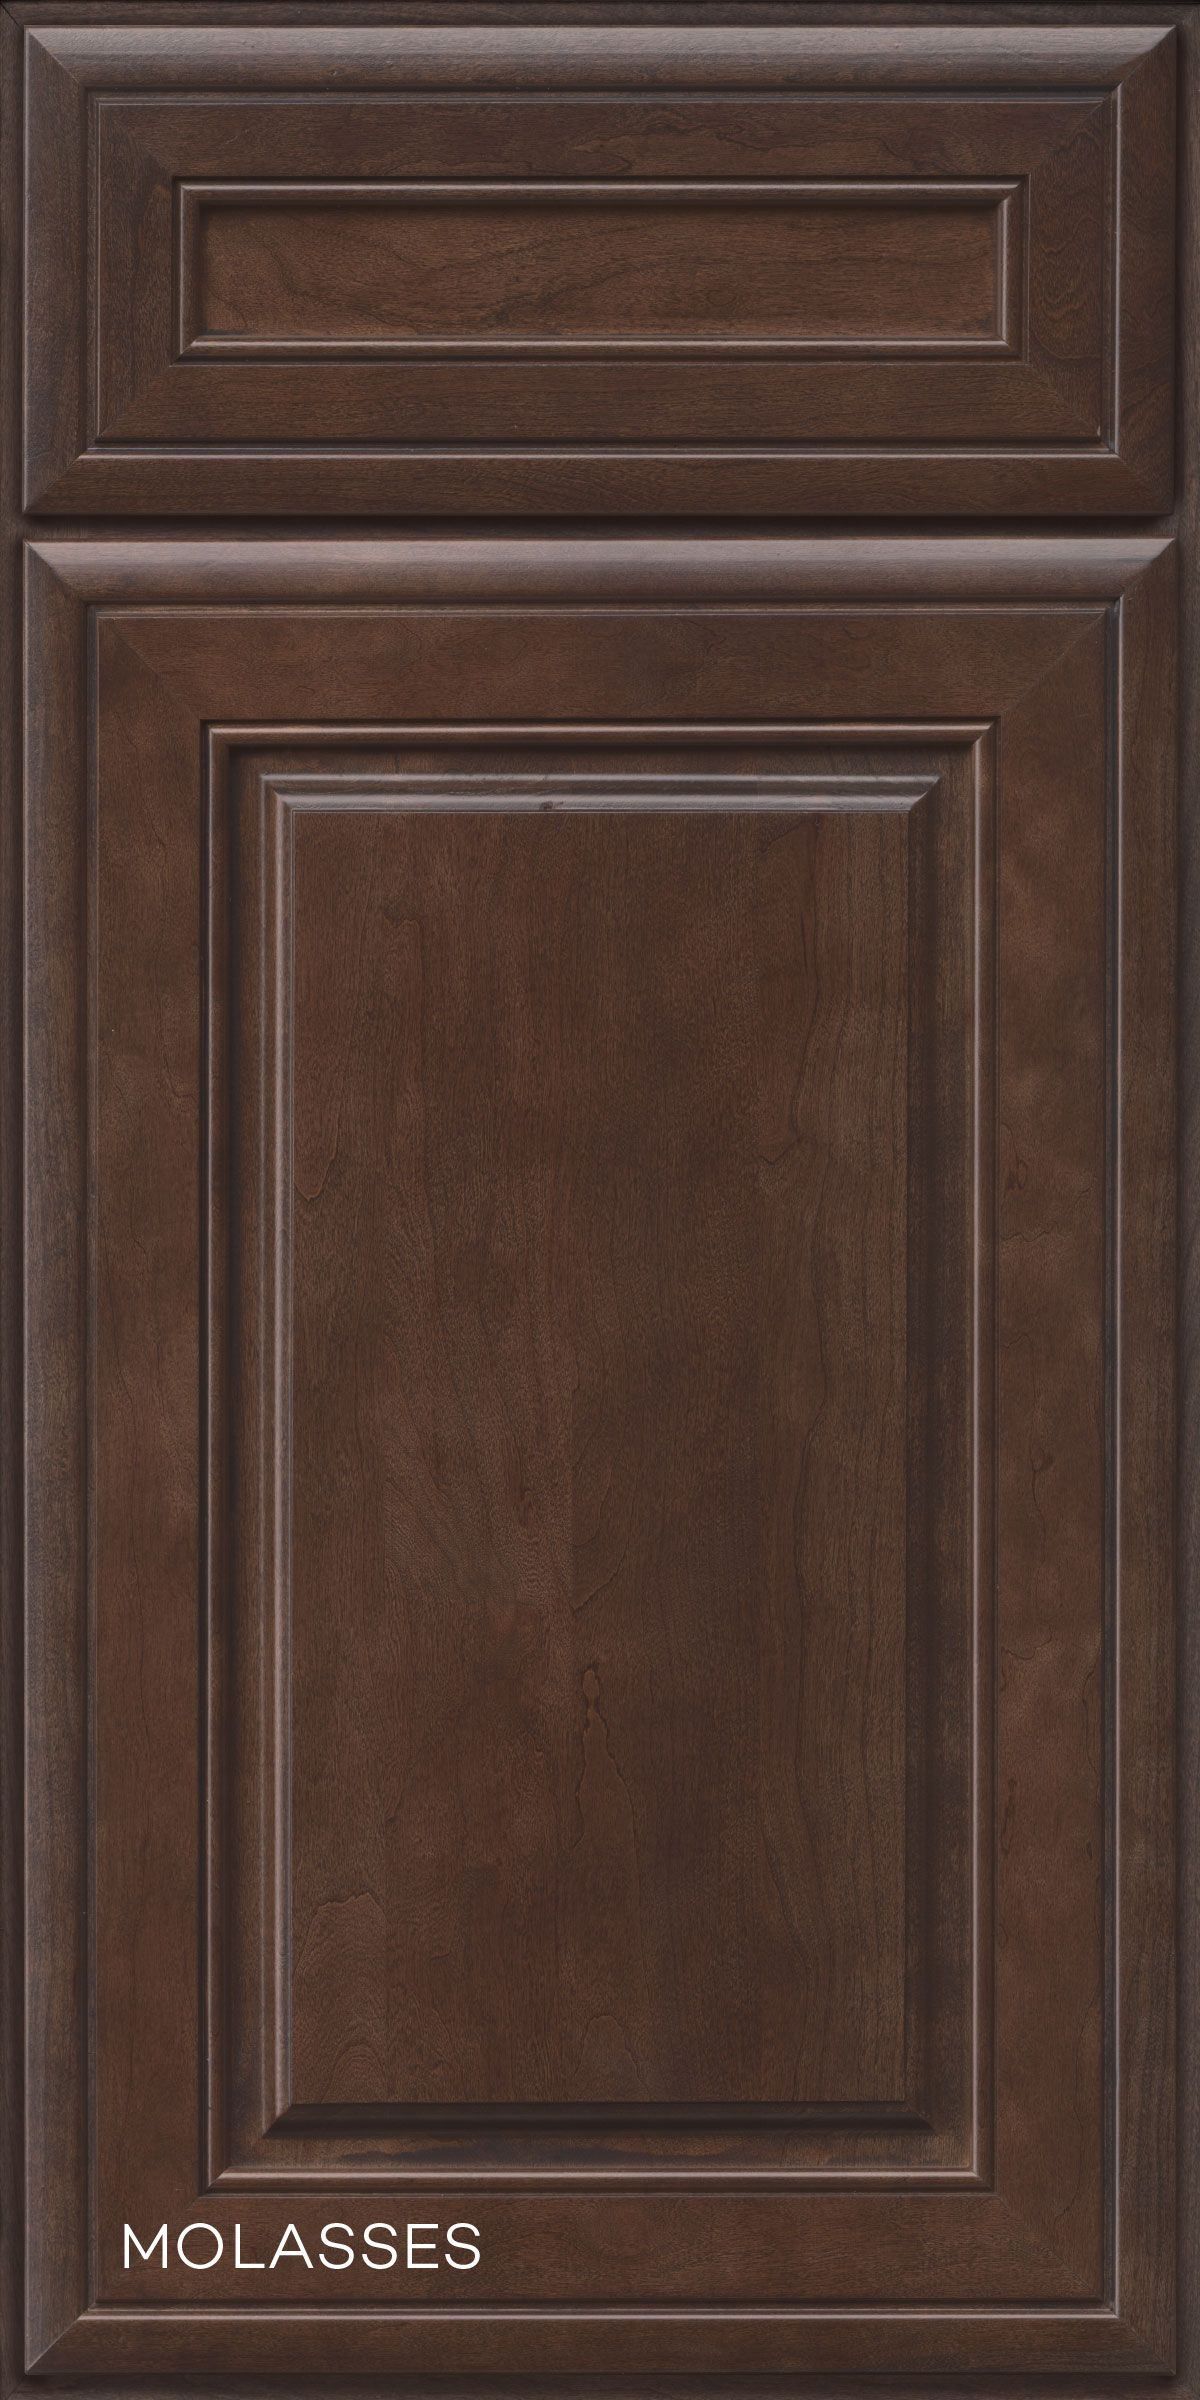 Kraftmaid Kitchen Cabinet Replacement Doors Choose KraftMaid® Molasses wood finish to give your cabinets the